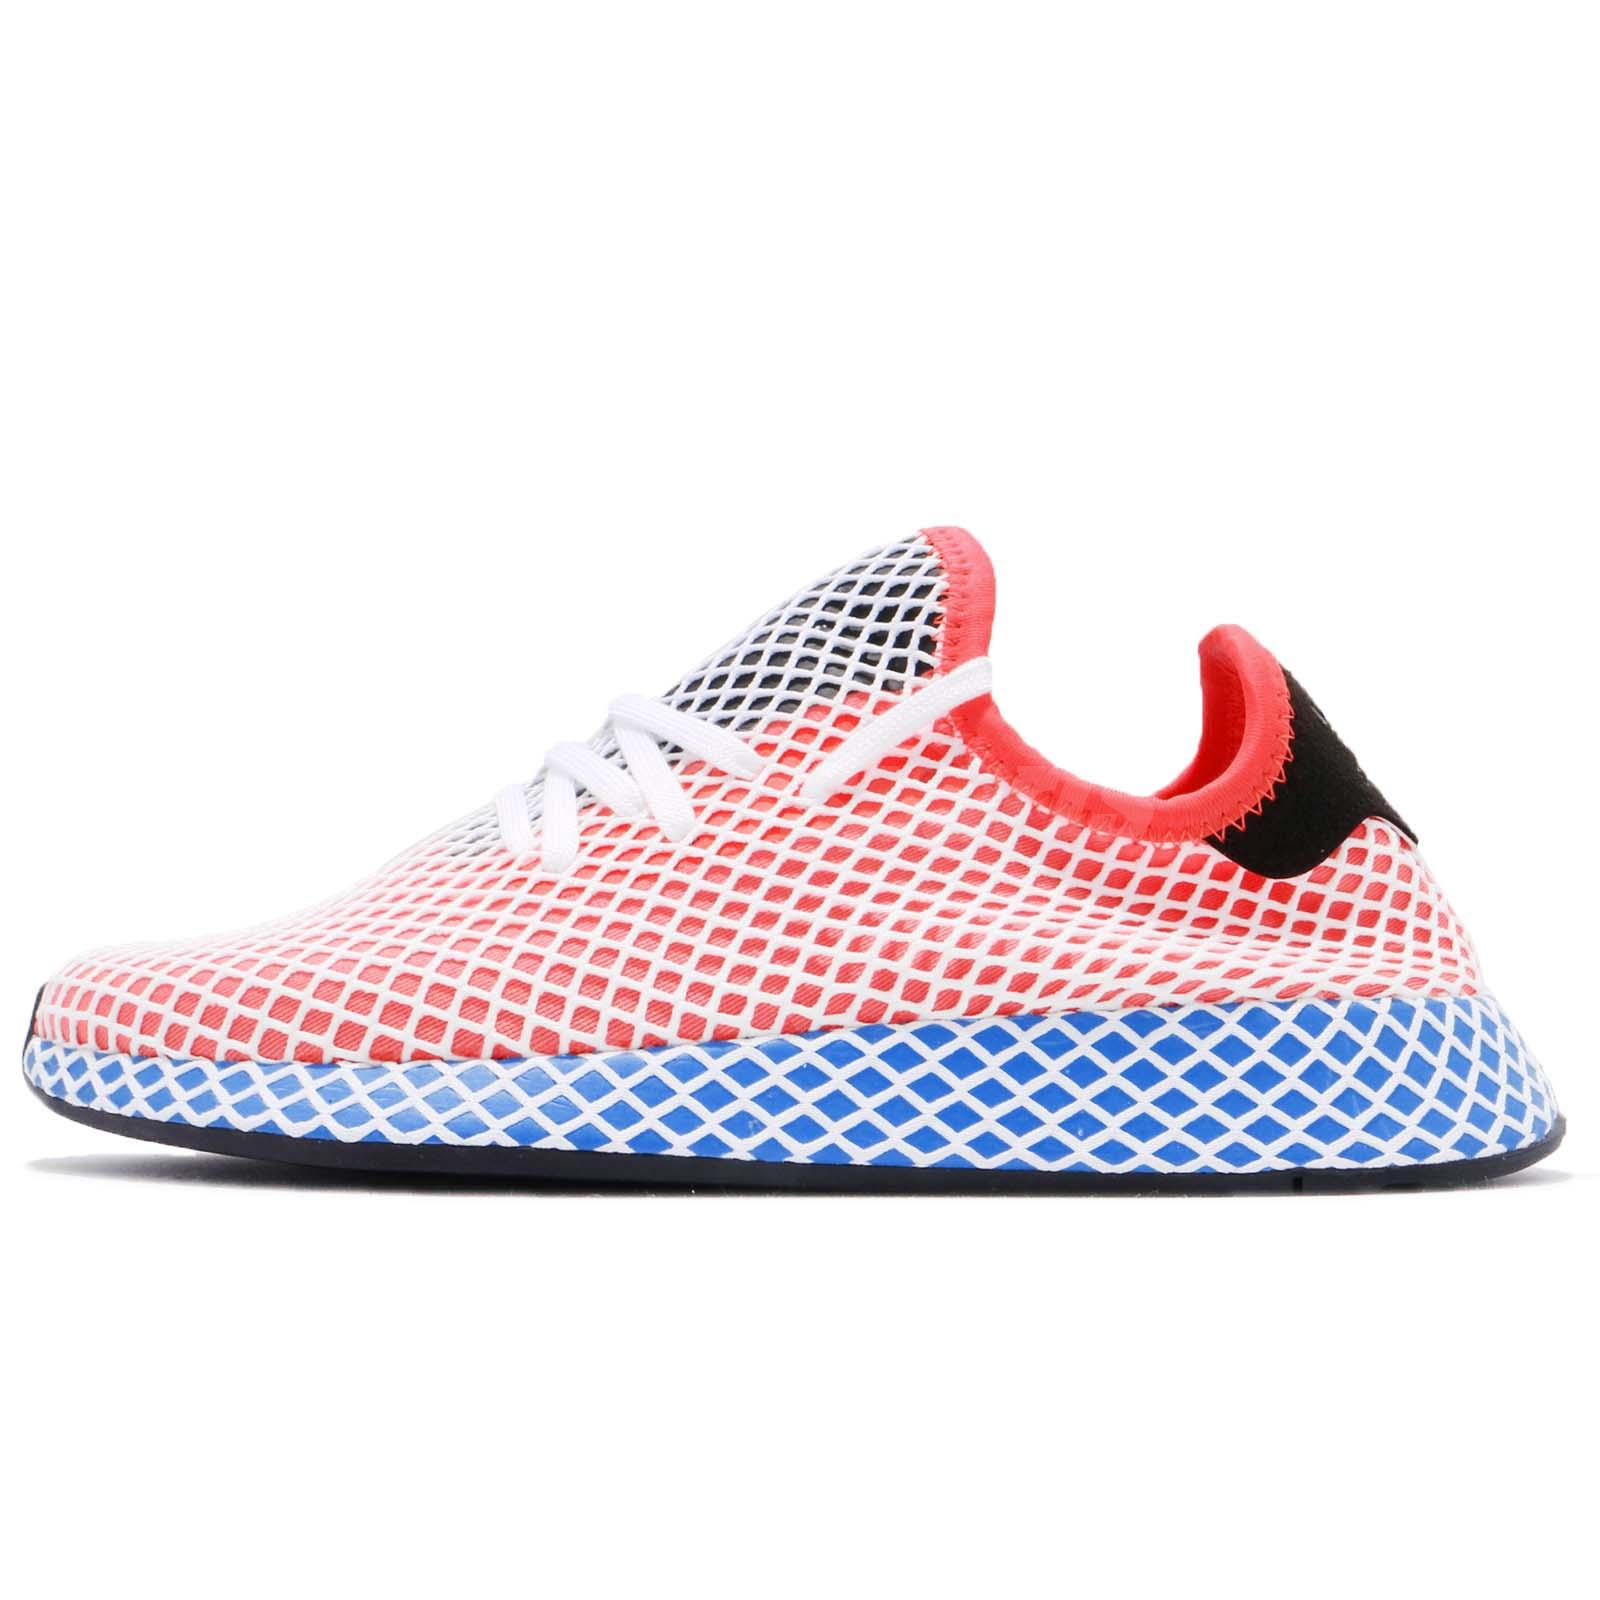 best service 9a348 be5c5 adidas Originals Deerupt Runner Solar Red Bluebird Adryan Hanson Men Shoe  CQ2624